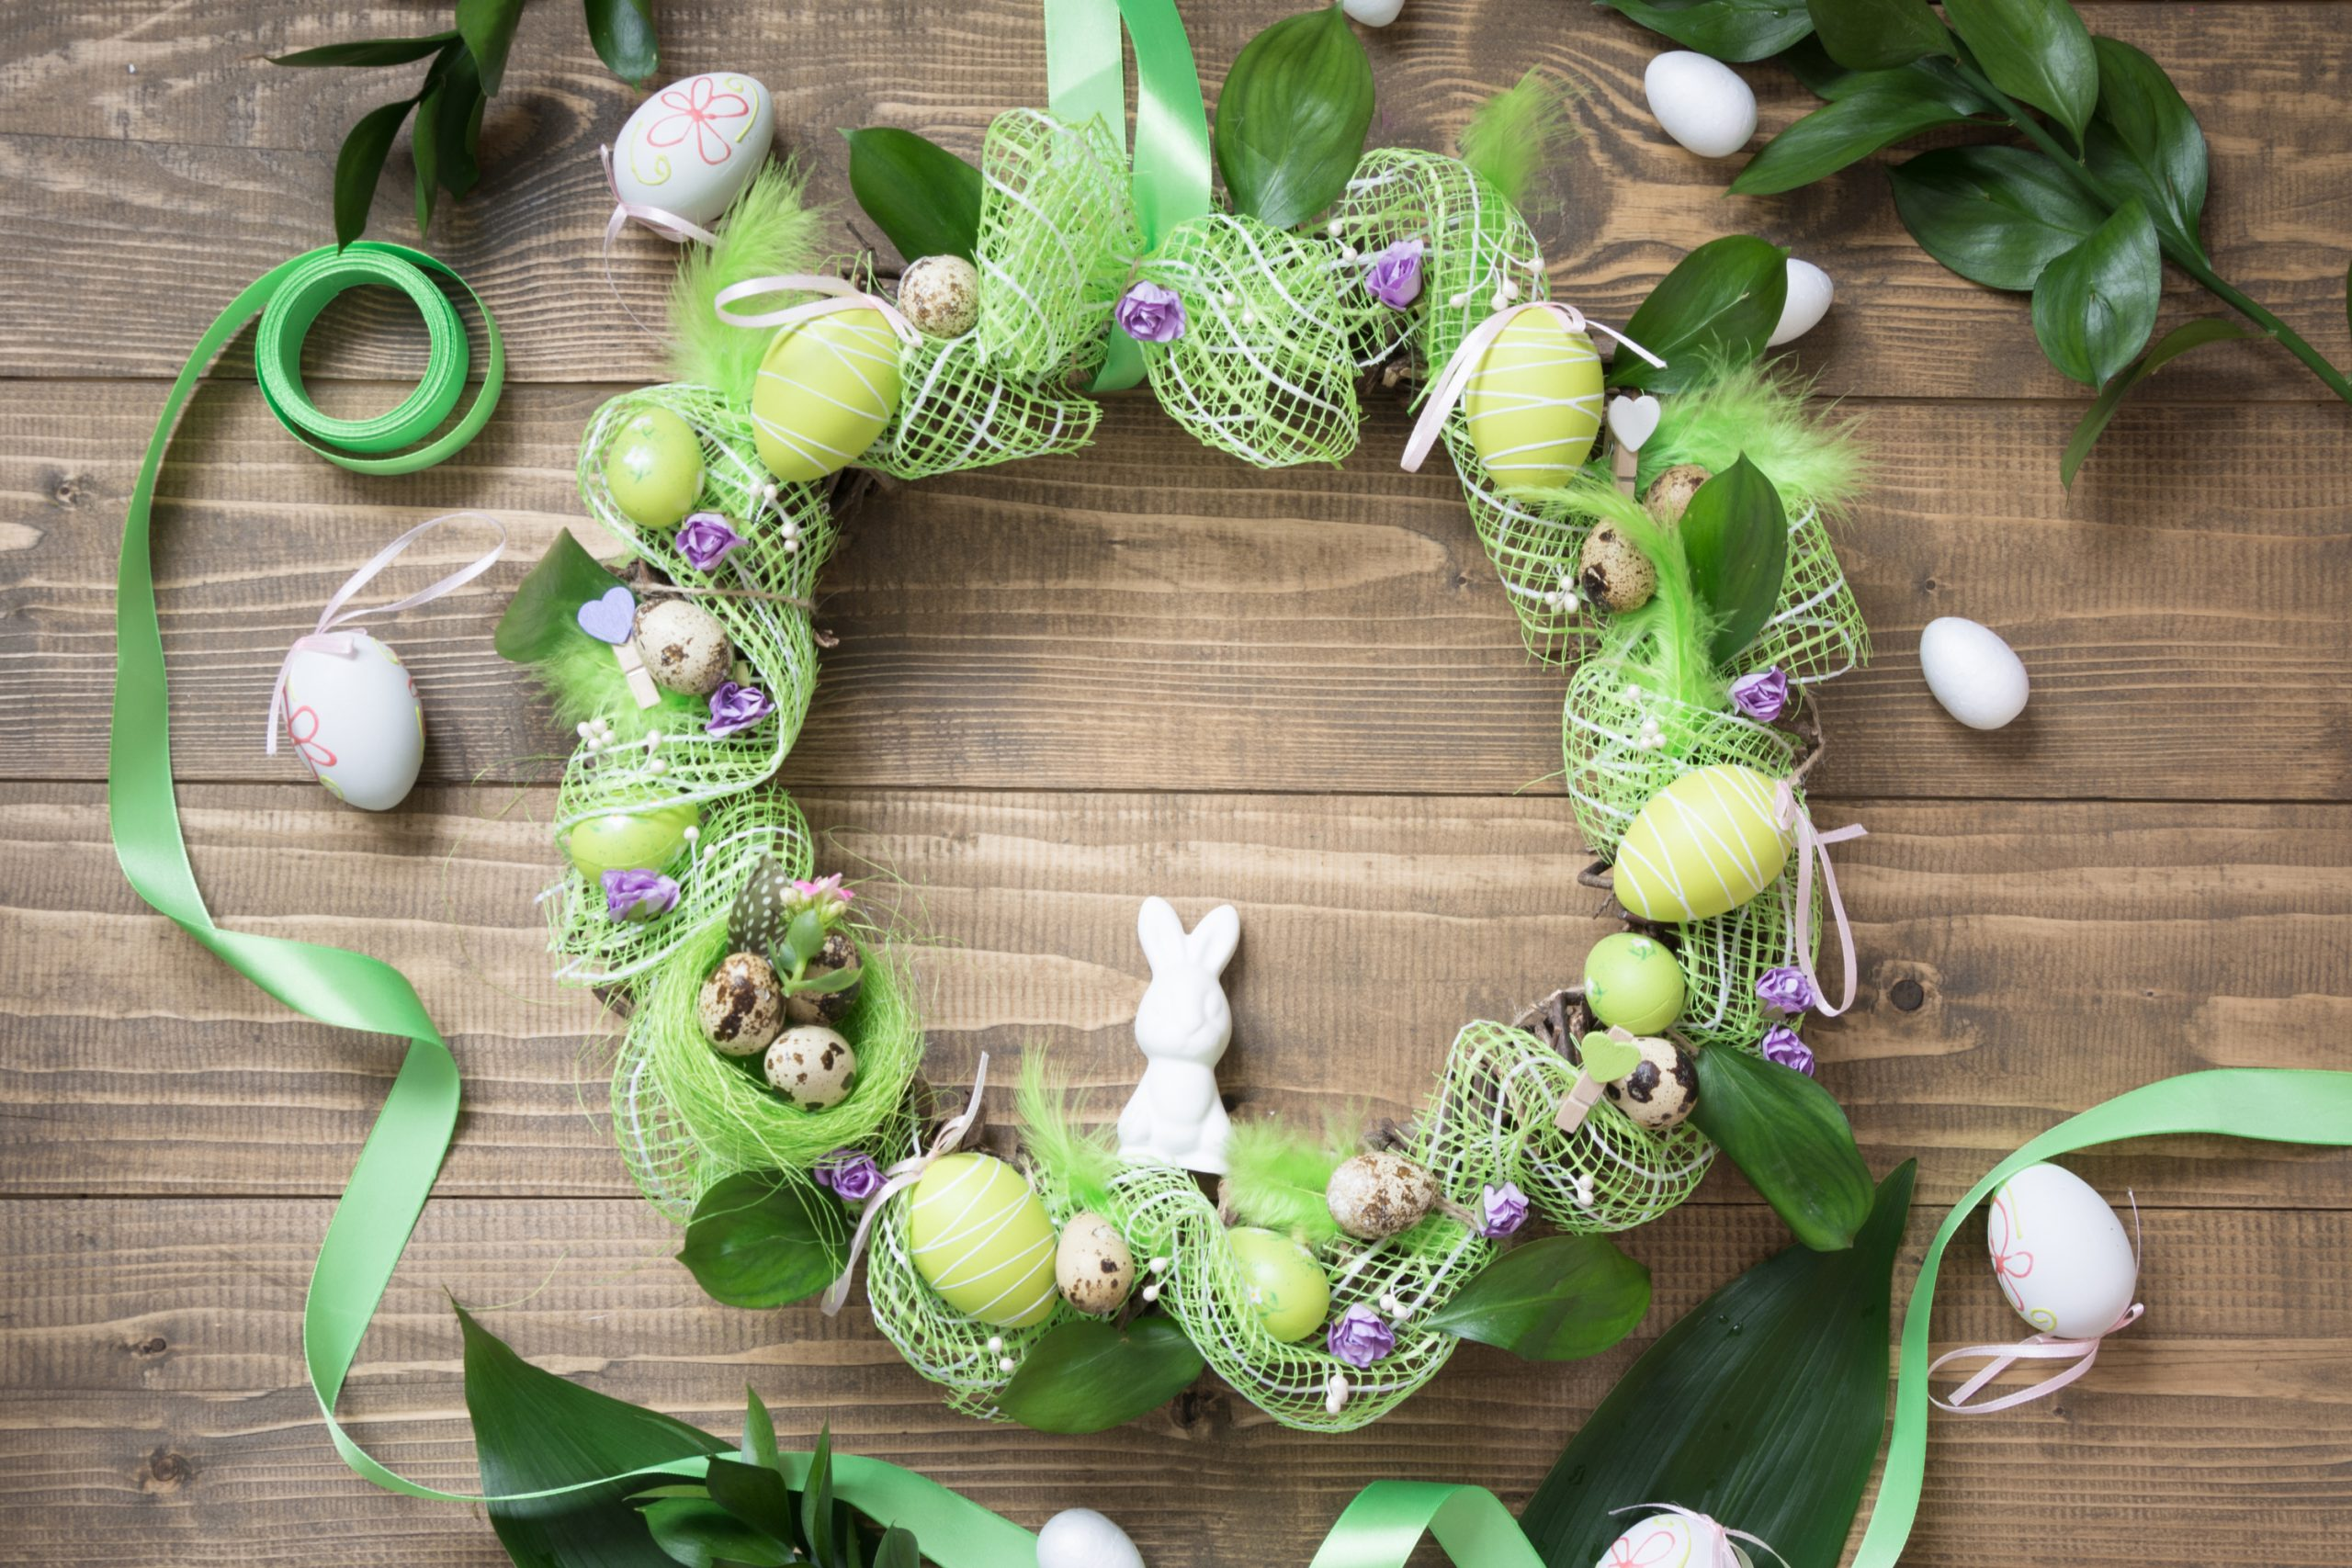 Spring is just around the corner and I seriously cannot wait! I am tired of all of the glum weather we've had in my neck of the woods! I'm already planning ahead to my Spring porch decor and am working this week on making my own spring wreaths. See how easy it is to DIY your own spring wreath.